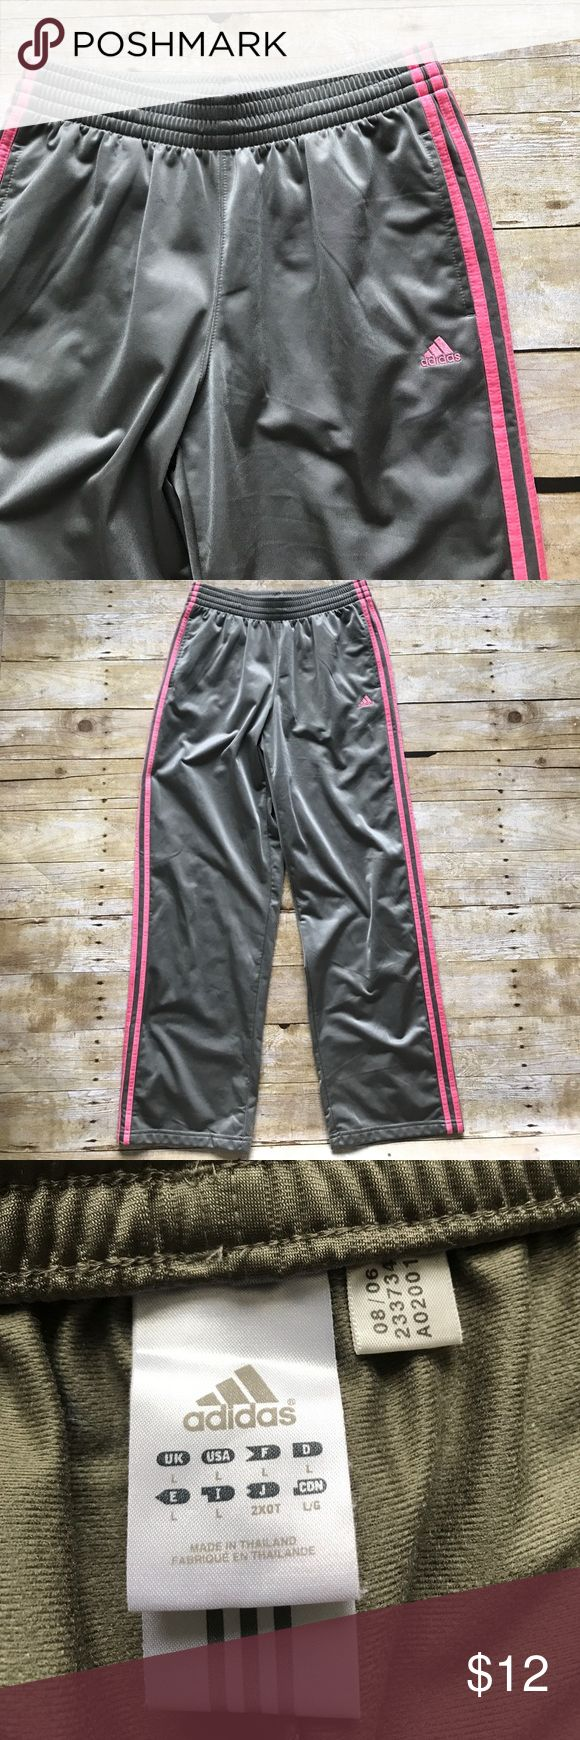 Adidas Sweat Pants Light army green with pink logo and steipes. Stain on the front left leg by the logo. Can be taken out with icy clean I just don't have any! Price reflects the stain. Other than that no rips or holes!! ☀️ Coming from a pet friendly home of one adorable Pomsky named Lulu :) Adidas Pants Track Pants & Joggers